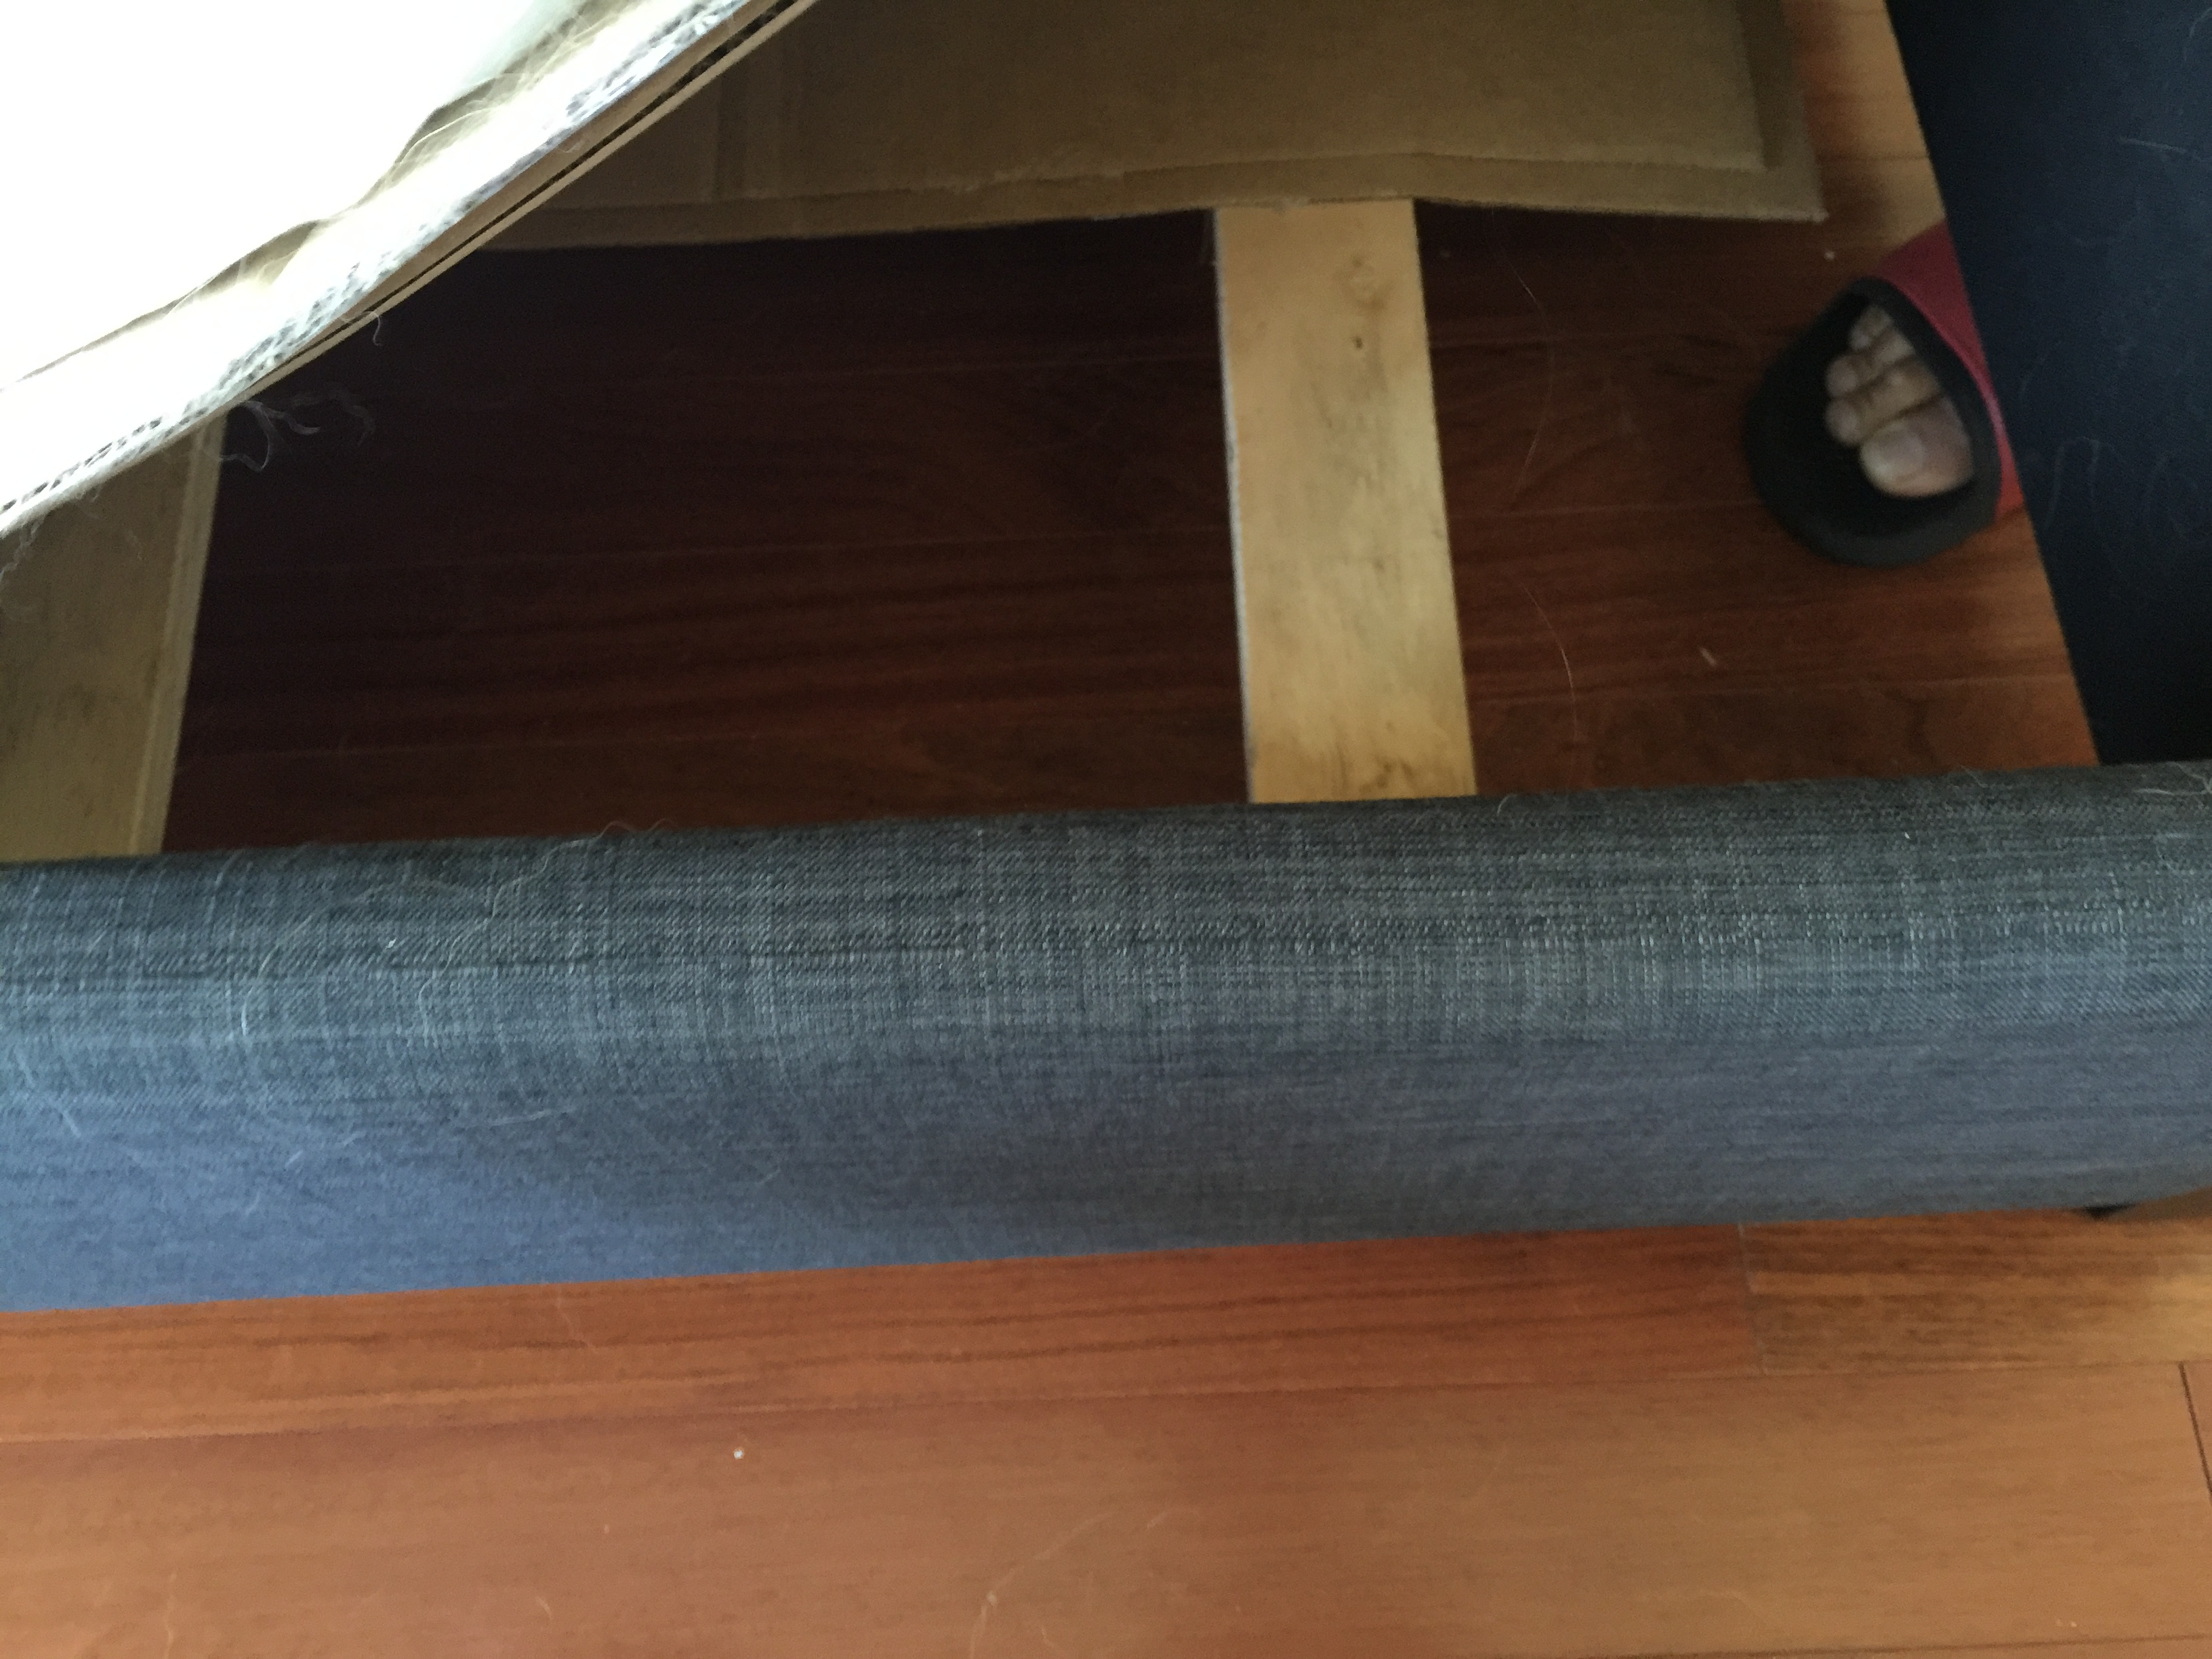 My Experiment with Tuft and Needle Mattress and cheap